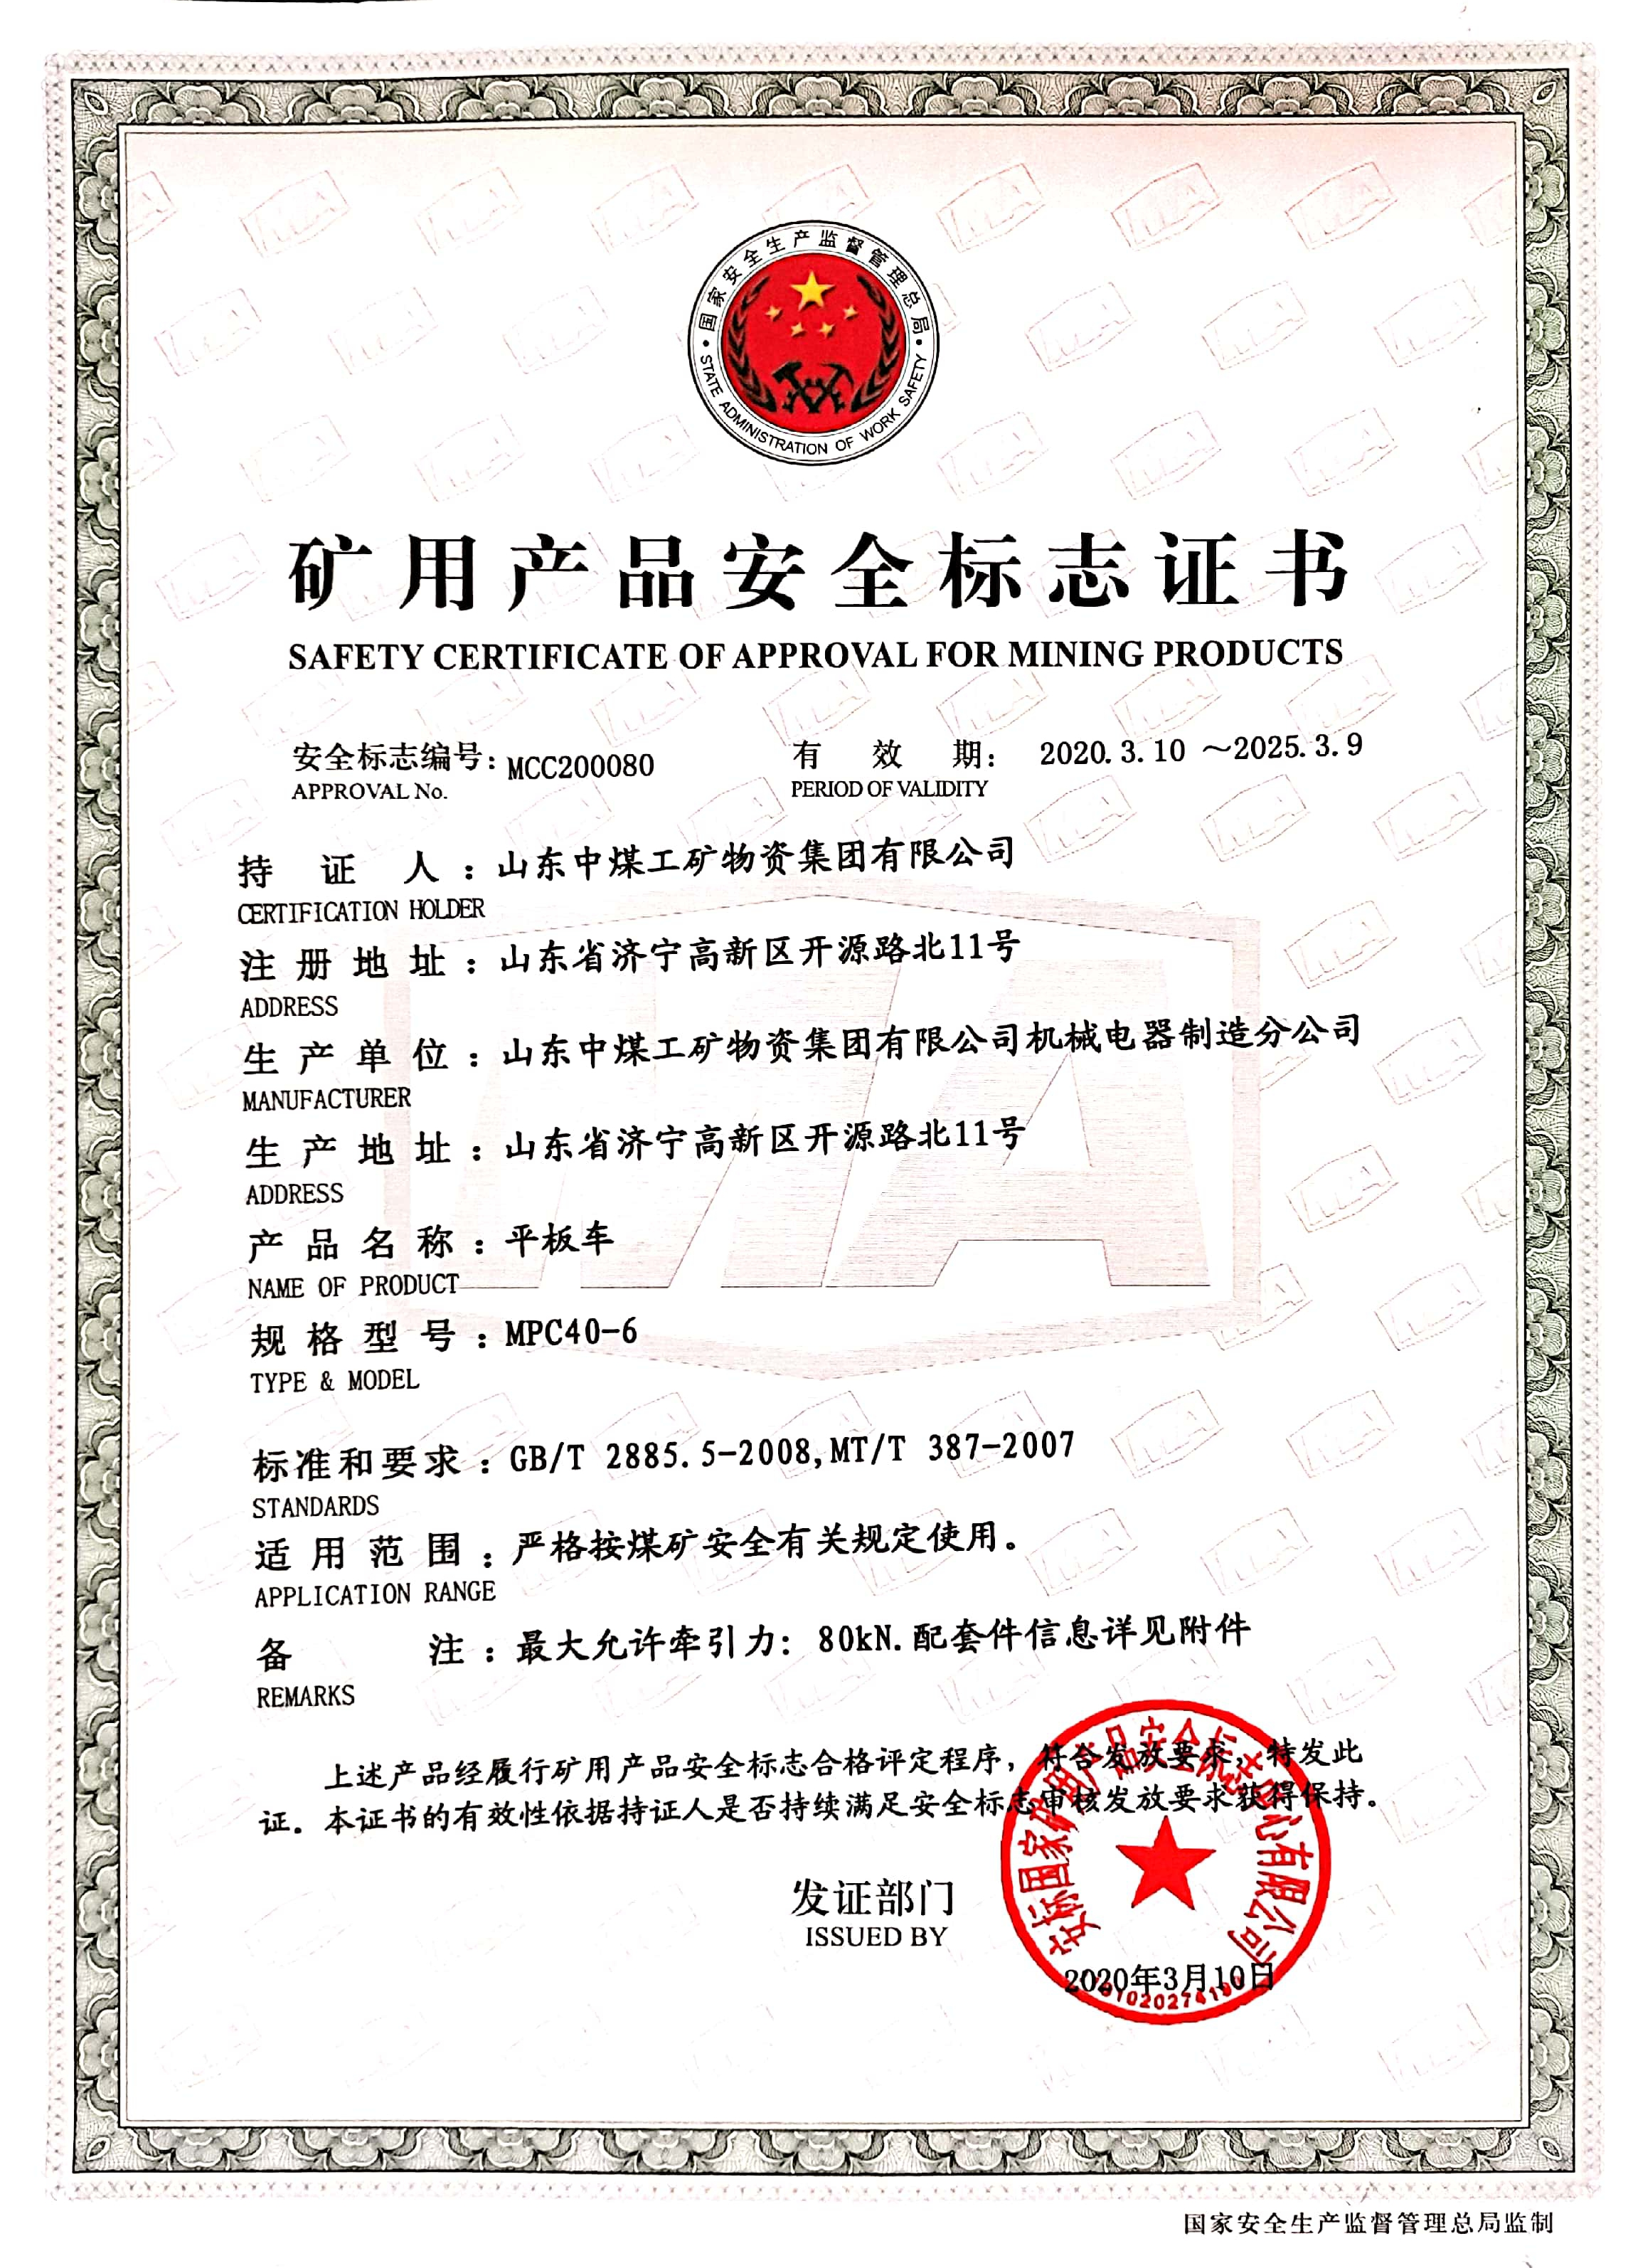 Warm Congratulations China Coal Group Add 3 More National Mining Product Safety Sign Certificate